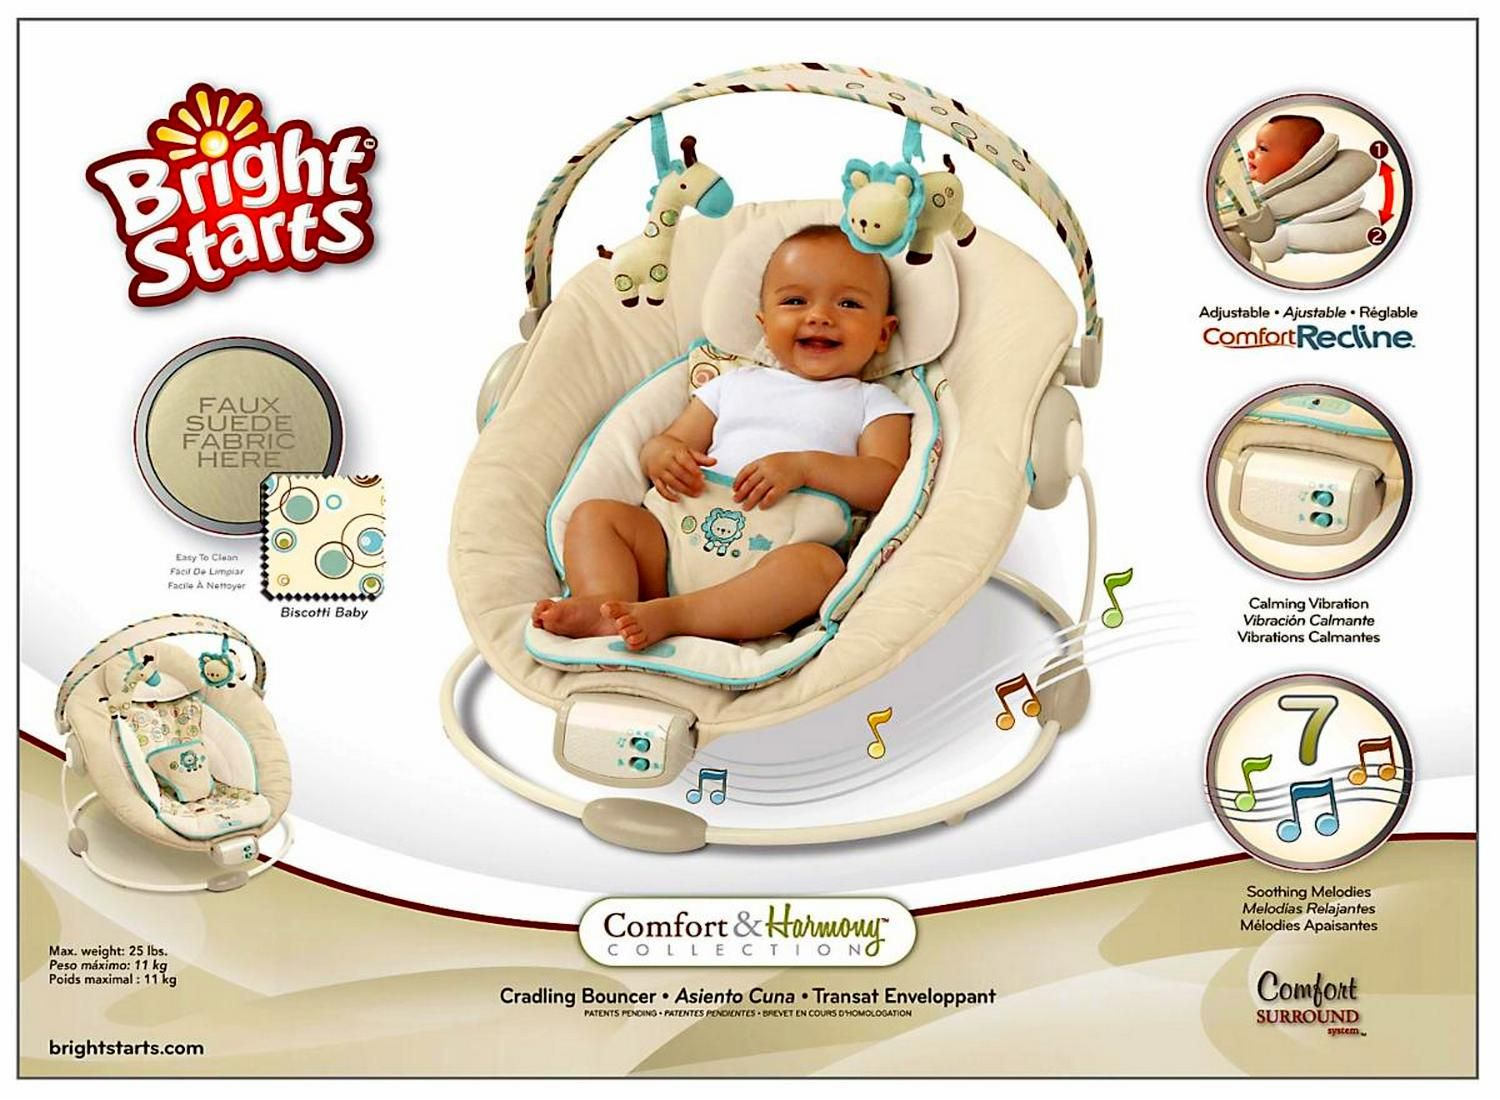 Portable Bassinet Complect Advantages Of The Charming Graco Pack N Play Playard Silhouette Farrow